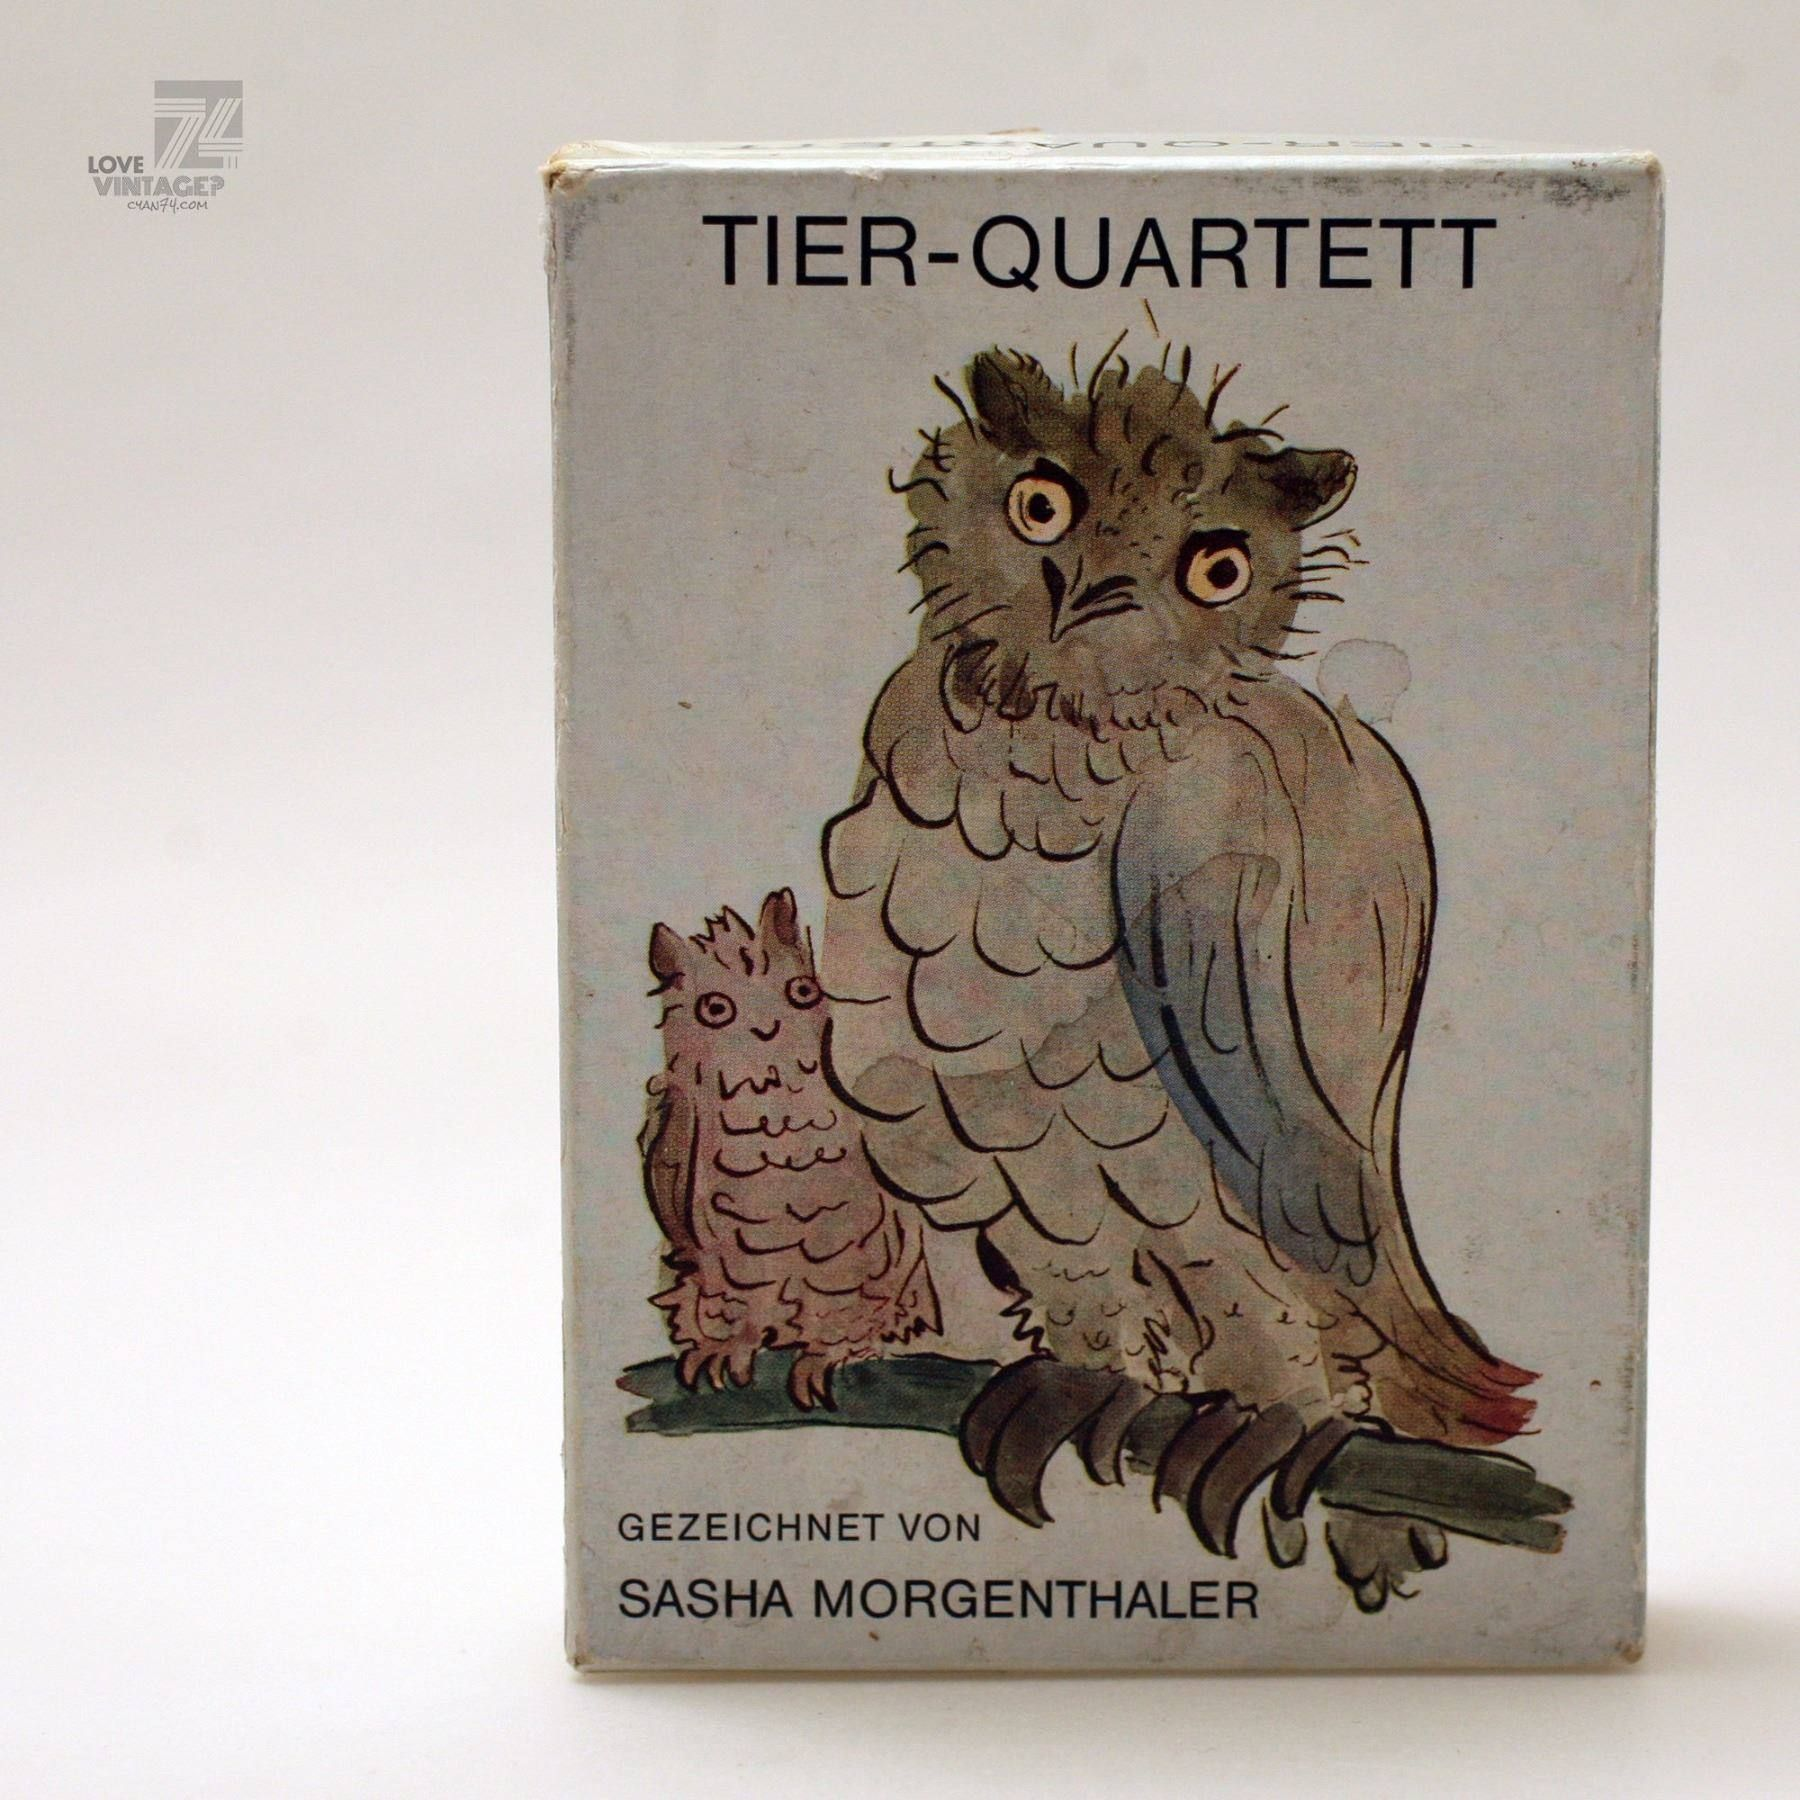 cyan74.com - vintage & pop culture | SASHA MORGENTHALER TIER-QUARTETT